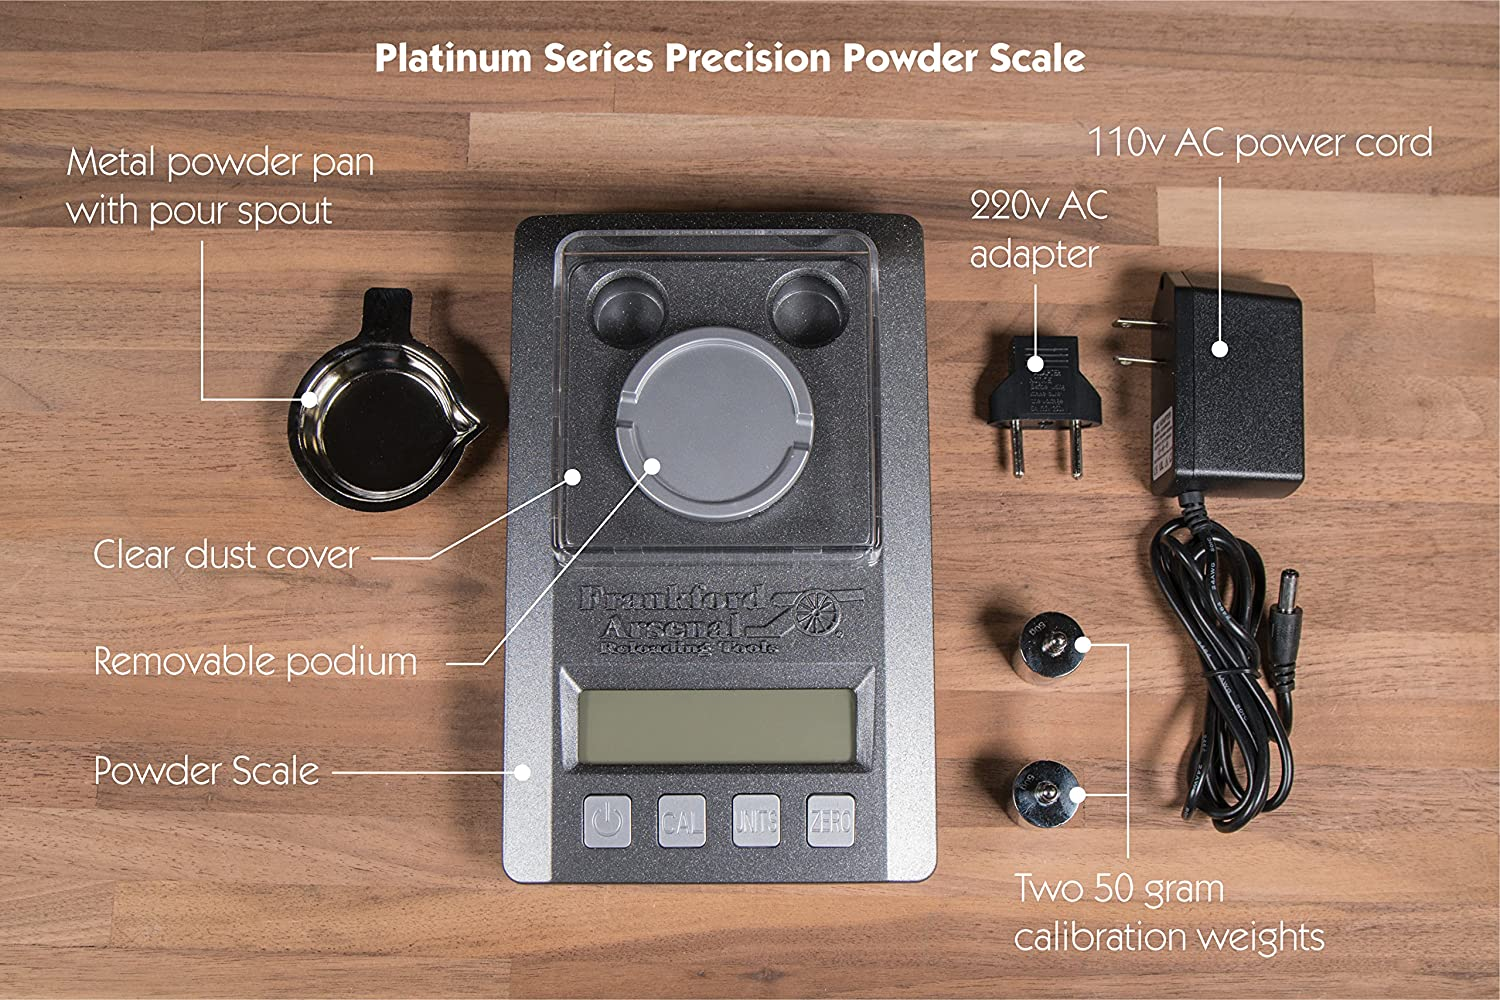 B00EE6GHU8 Frankford Arsenal Platinum Series Precision Scale with LCD Display and Case for Reloading 91S4AEYa1wL._SL1500_